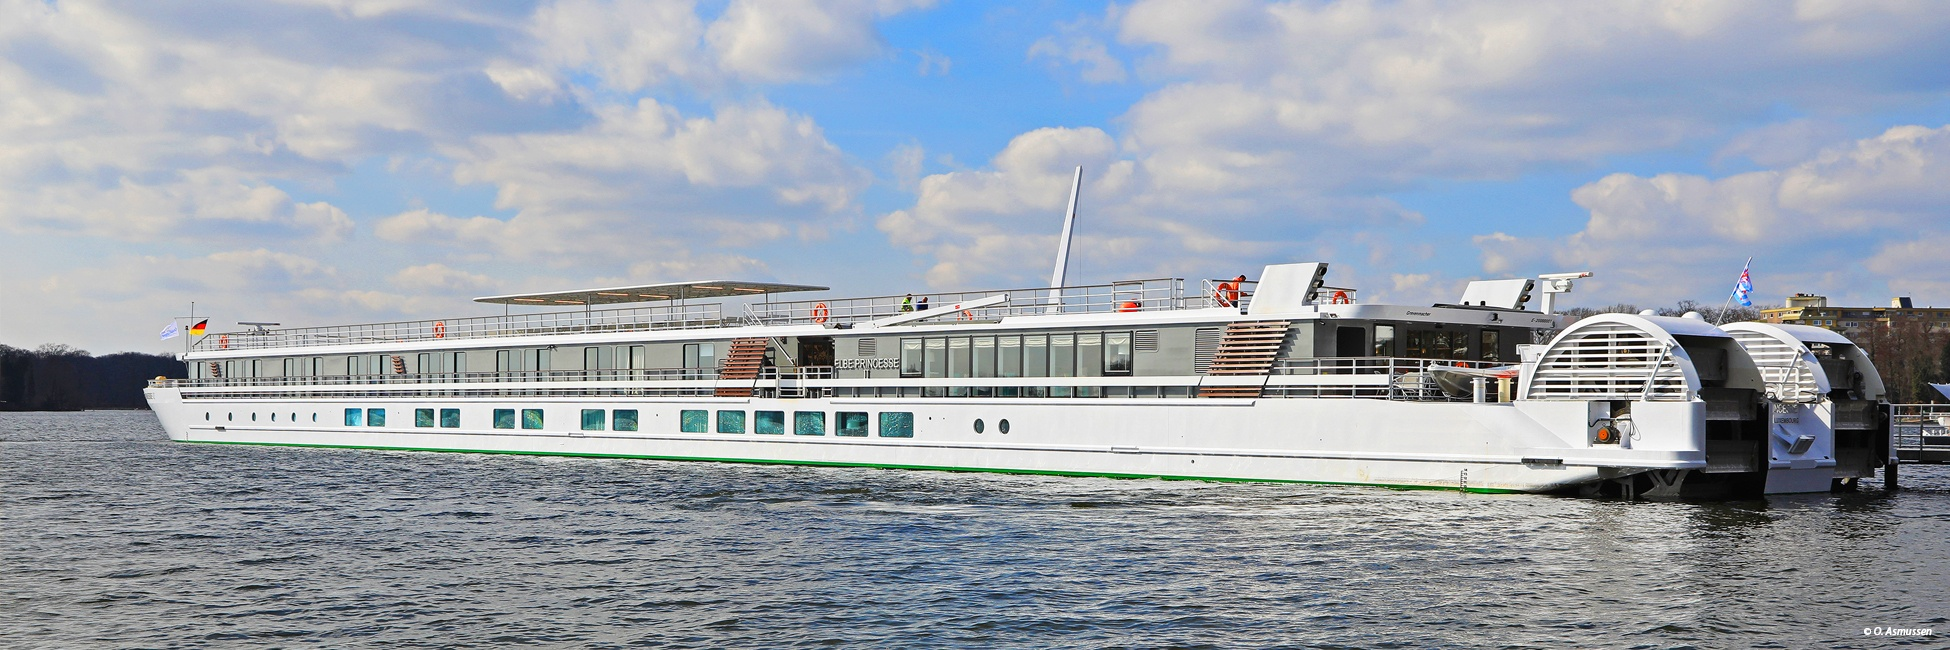 MS Elbe Princesse II à Berlin